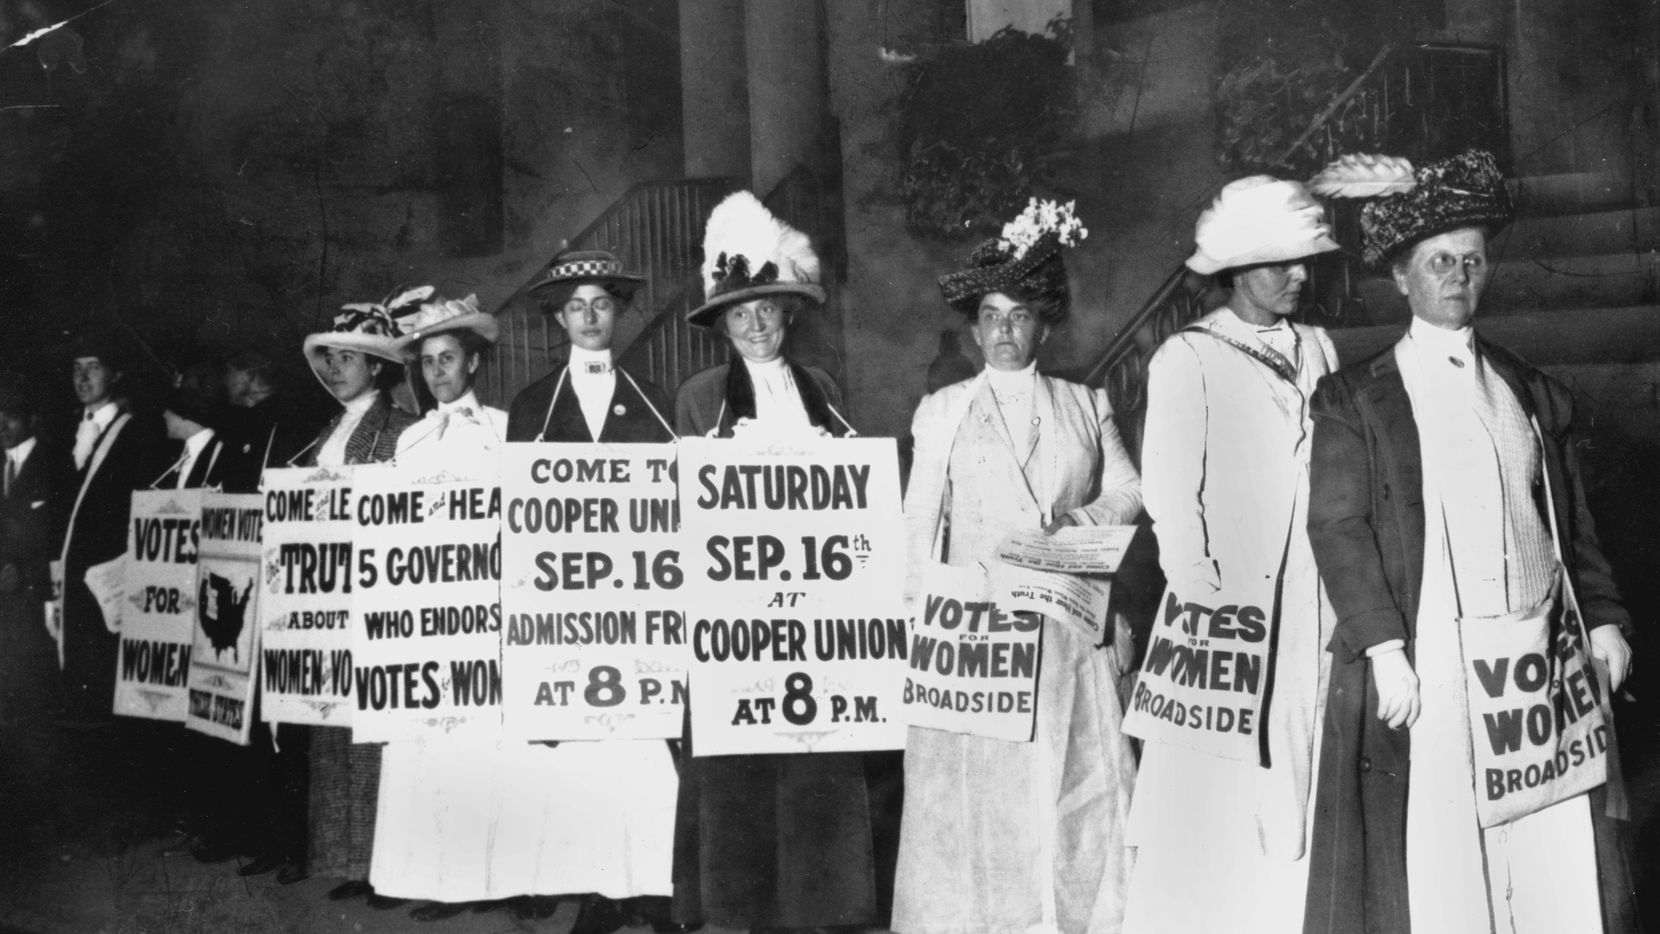 Demonstrators in 1916 hold a rally for women's suffrage in New York. The Seneca Falls convention in 1848 is widely viewed as the launch of the women's suffrage movement, yet women didn't gain the right to vote until ratification of the 19th Amendment in 1920.